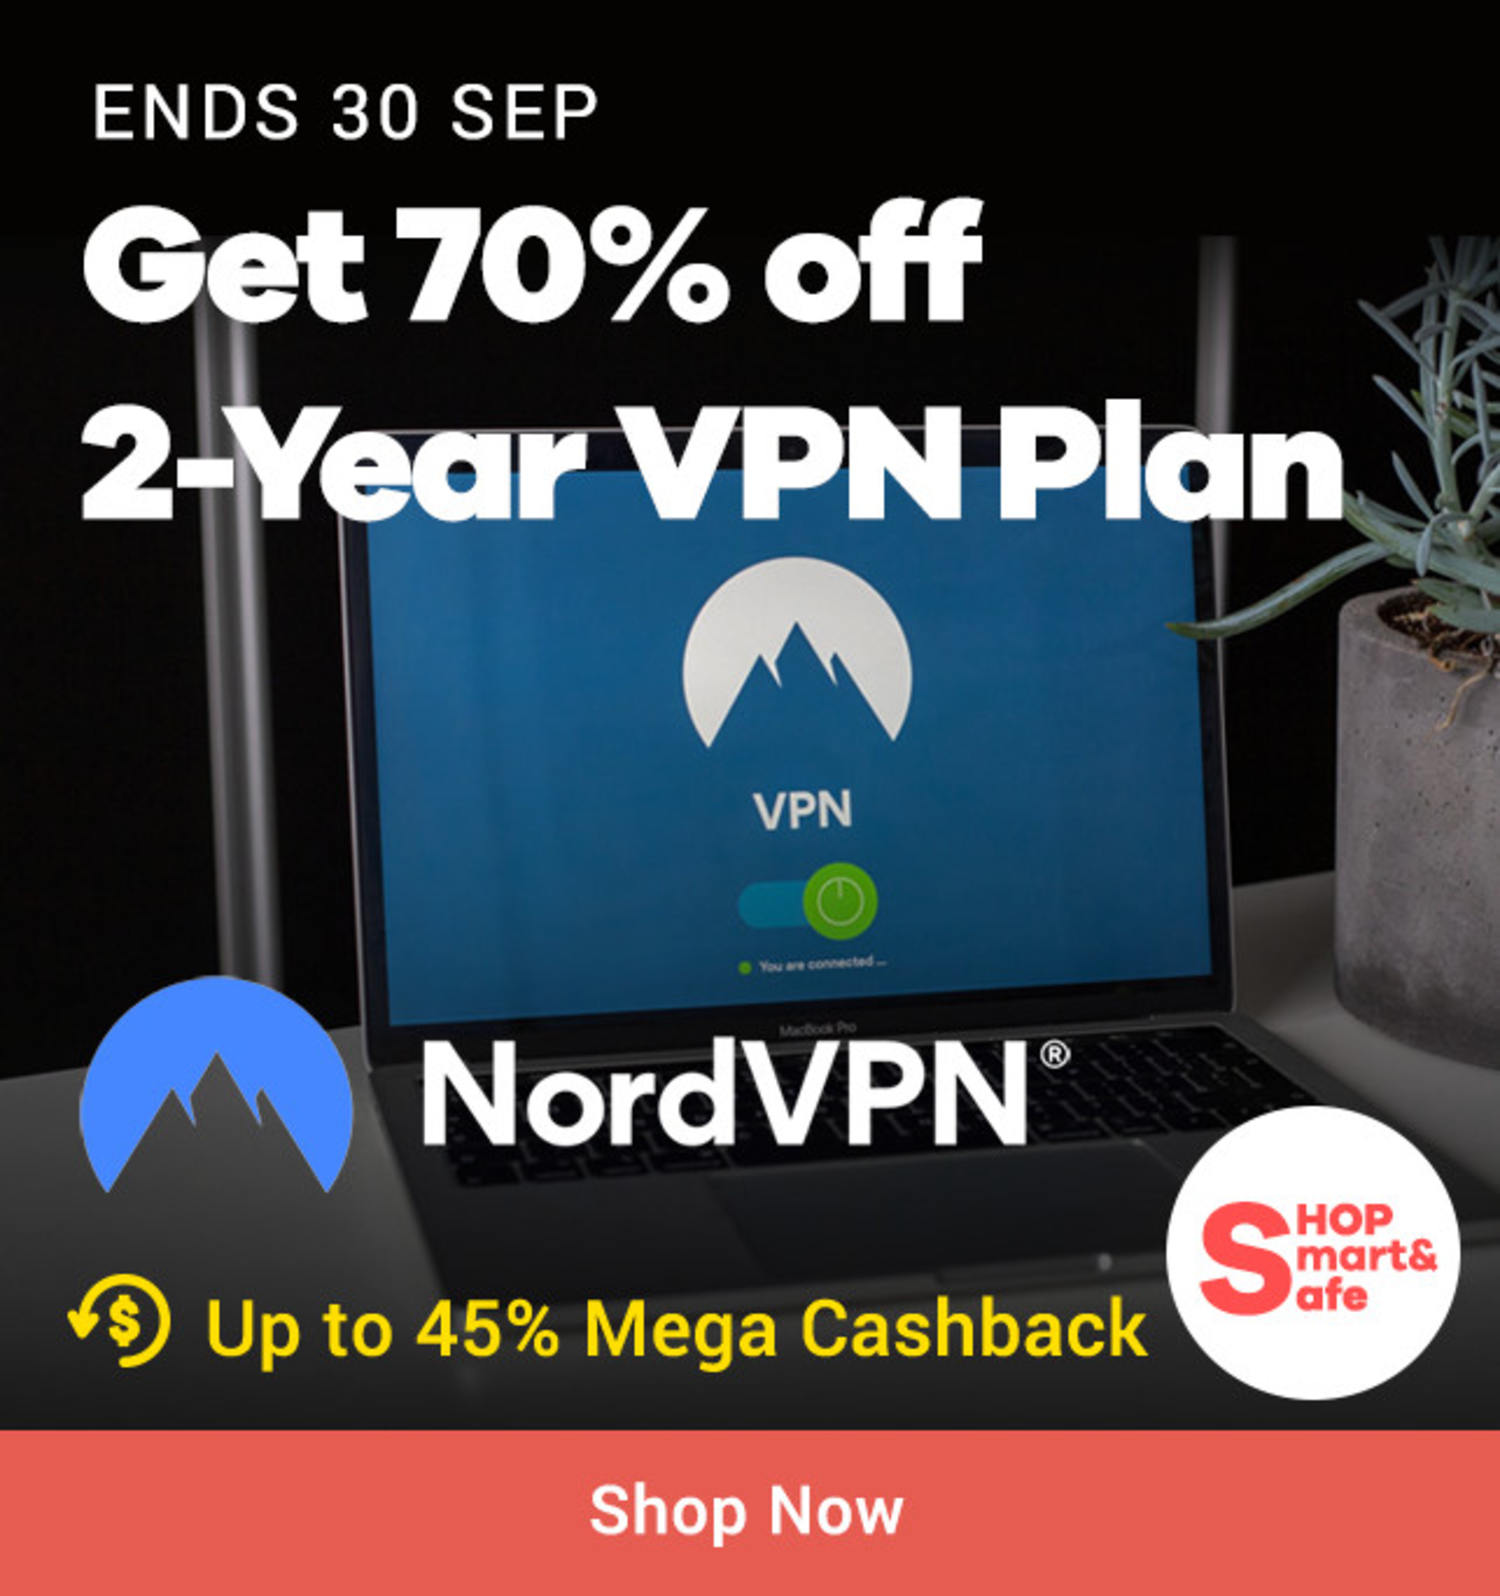 NordVPN: Get 70% off 2-Year VPN Plan